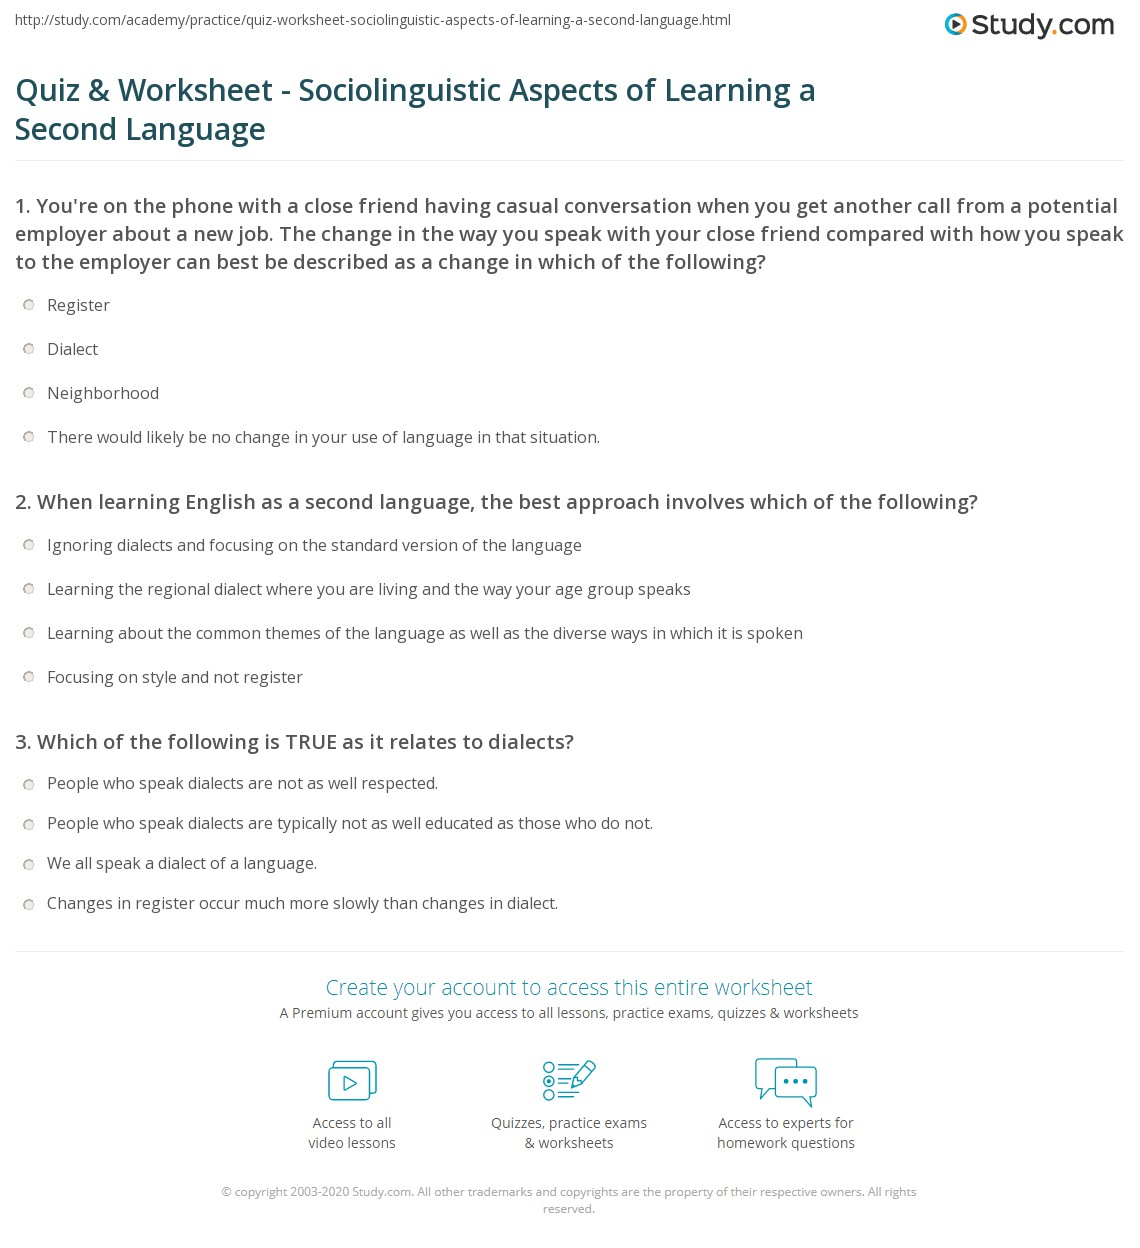 Quiz worksheet sociolinguistic aspects of learning a second when learning english as a second language the best approach involves which of the following 1betcityfo Image collections